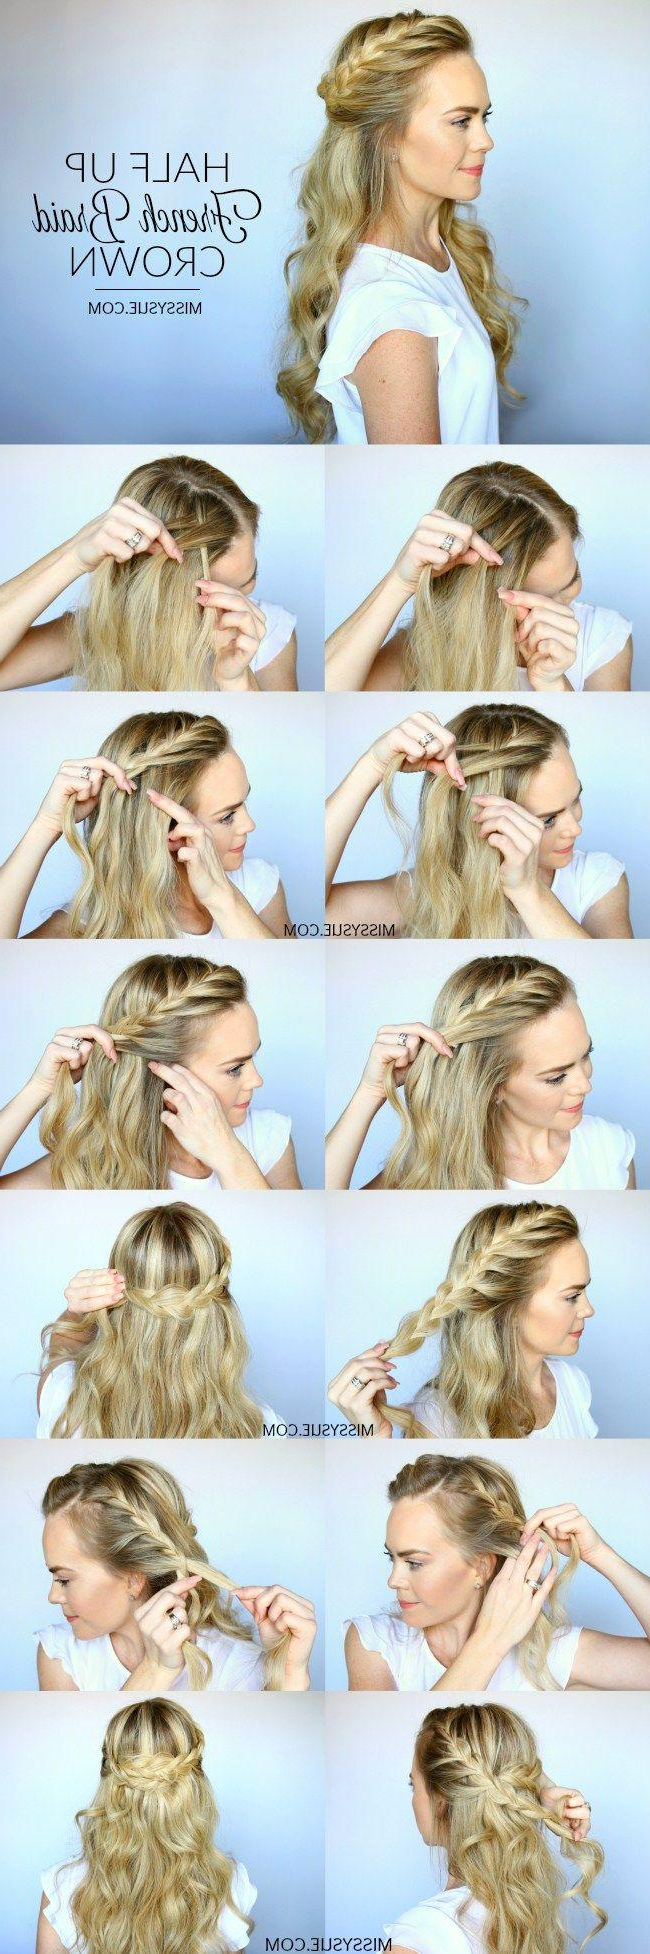 Current French Braided Halfdo Bridal Hairstyles Intended For Hair – Half Up French Braid Crown #2664788 – Weddbook (View 7 of 20)